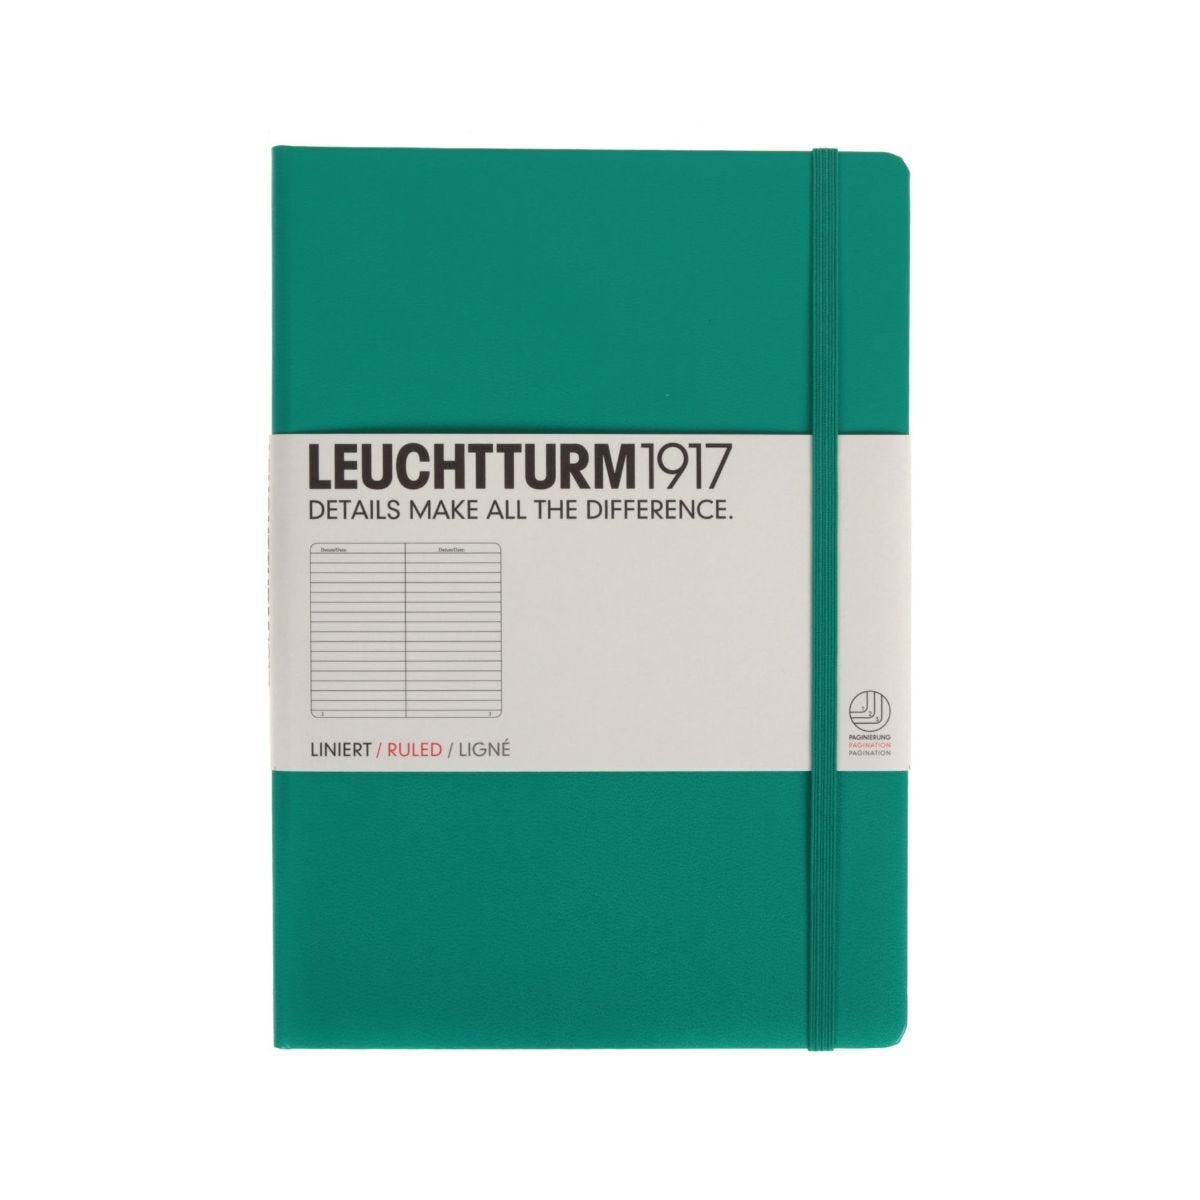 Leuchtturm 1917 Notebook Ruled A5